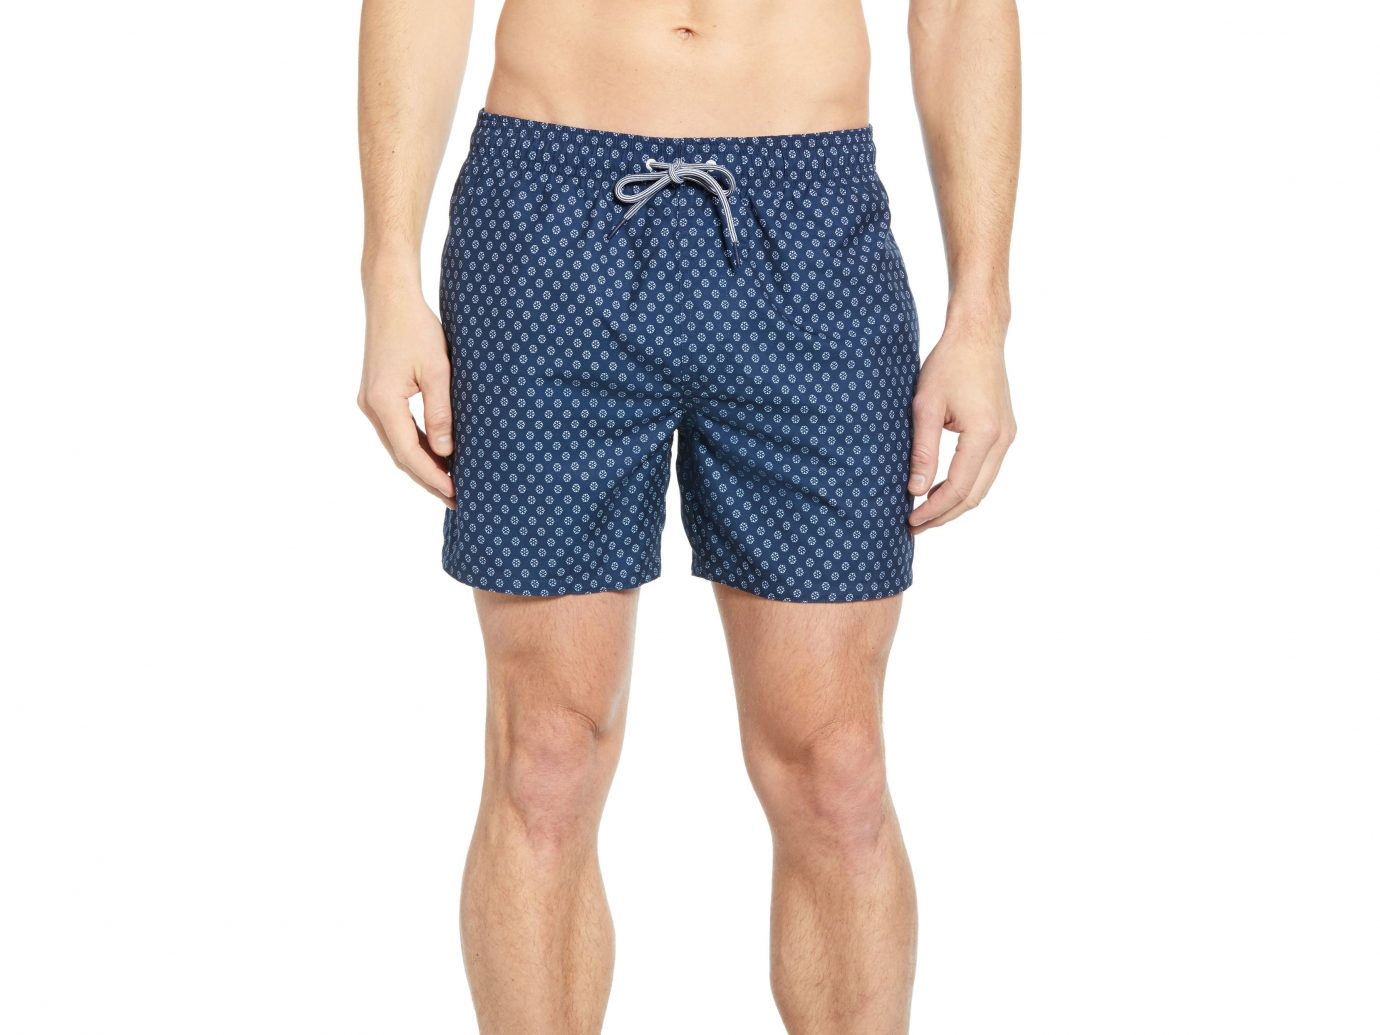 e8c455f9fd The 16 BEST Men's Swim Trunks of 2019 | Jetsetter